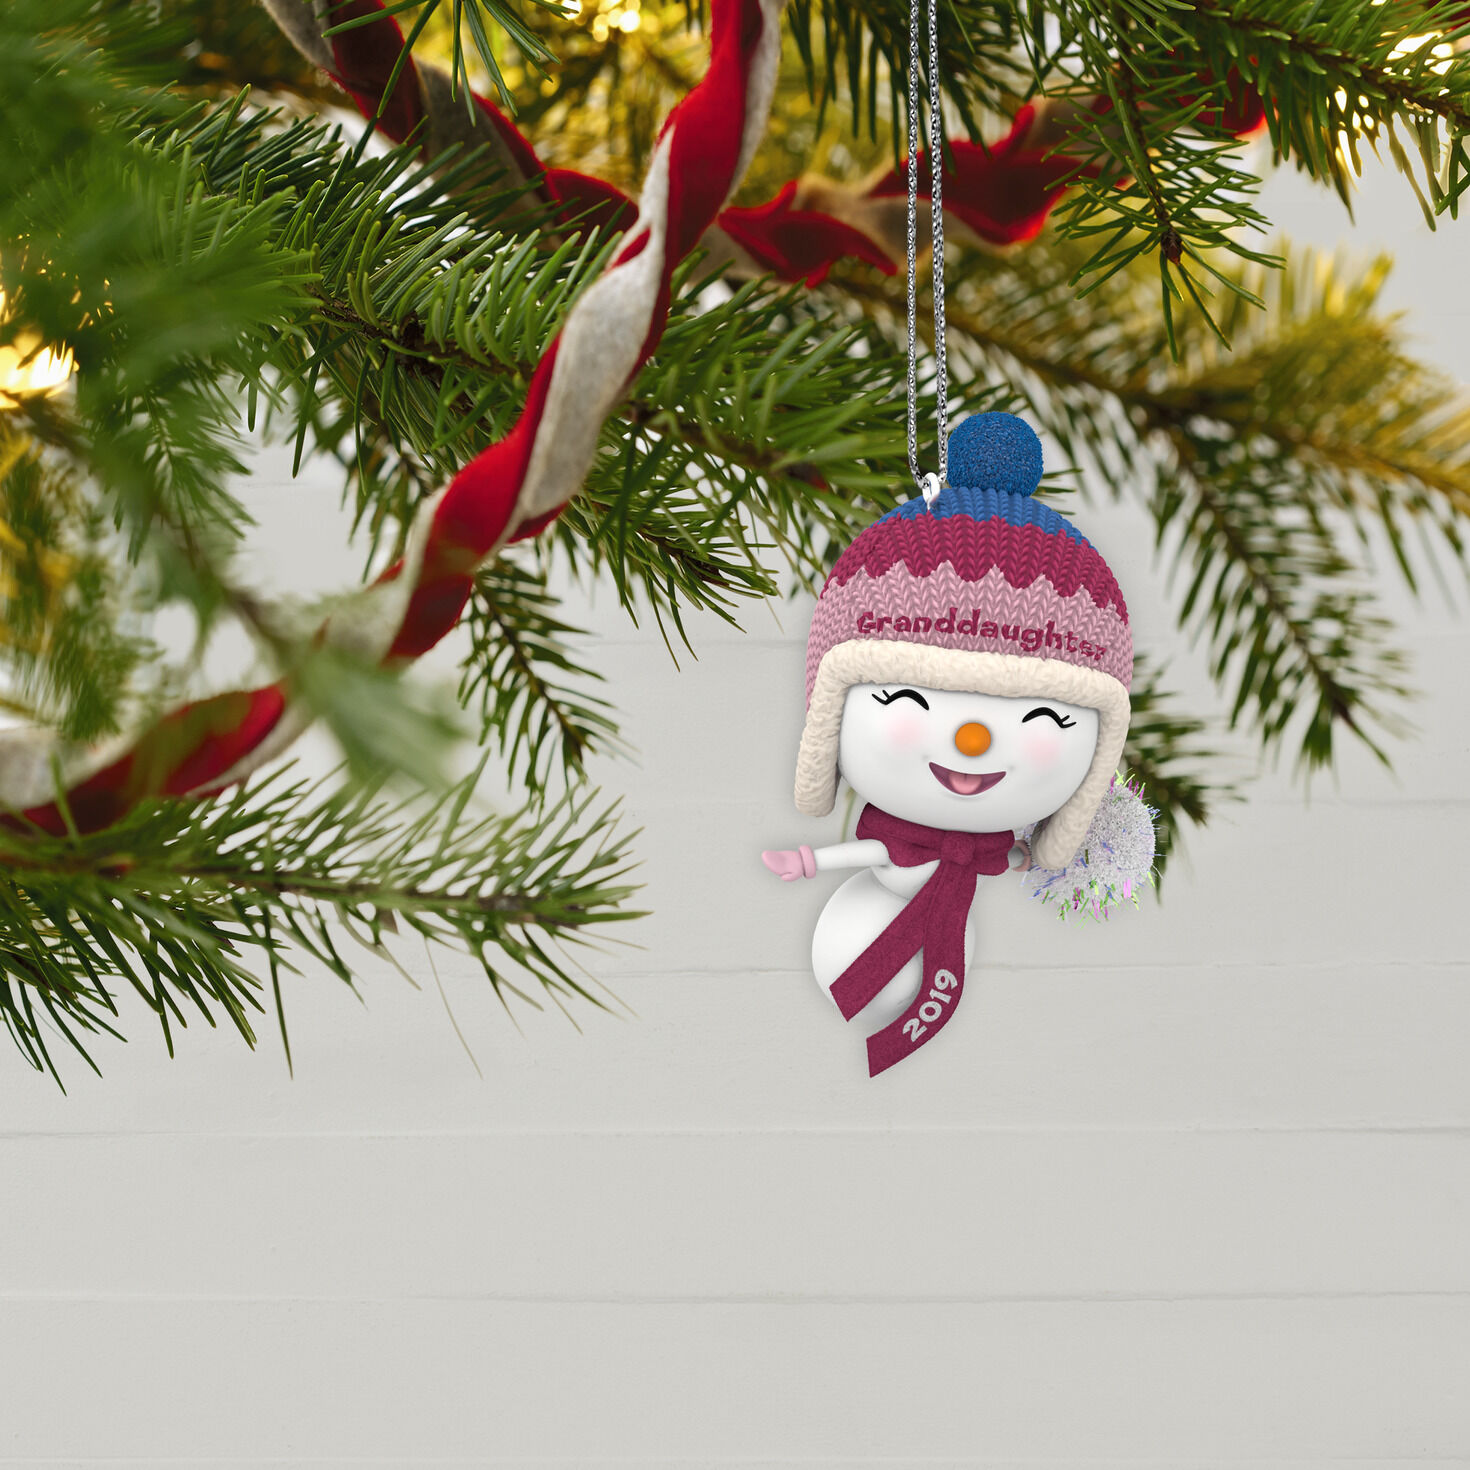 Granddaughter First Christmas Ornament